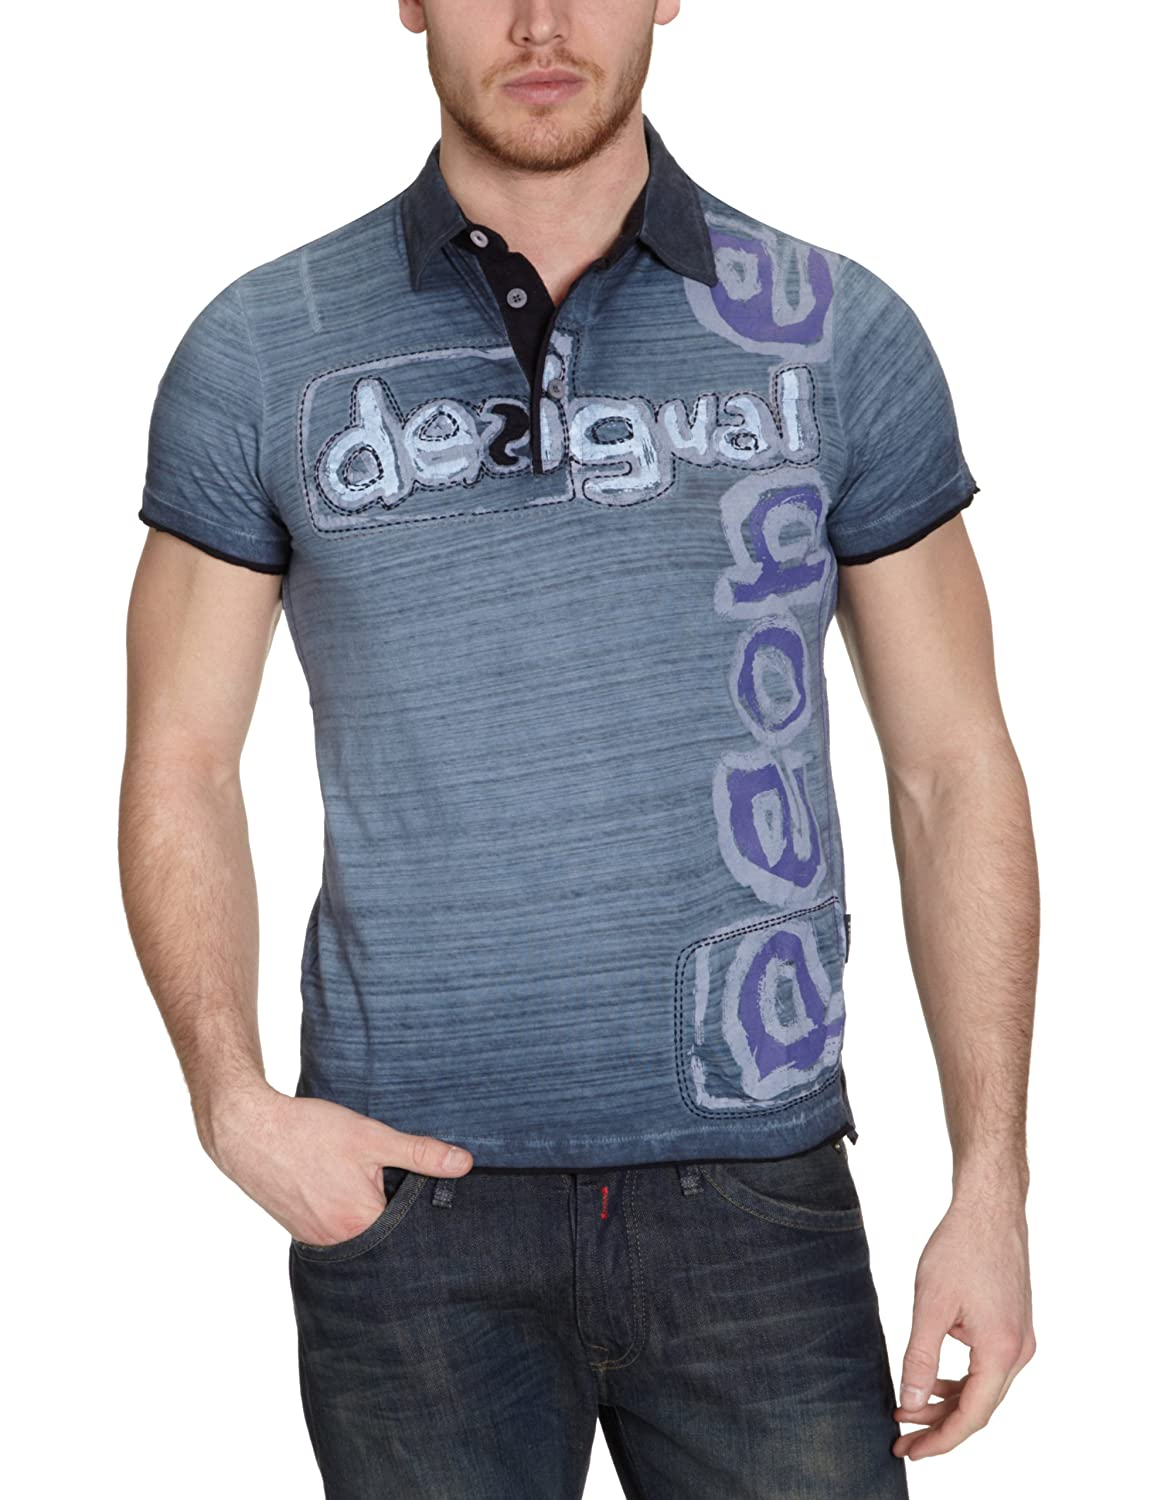 Desigual - Polo Regular fit con Cuello de Polo de Manga Corta para ...